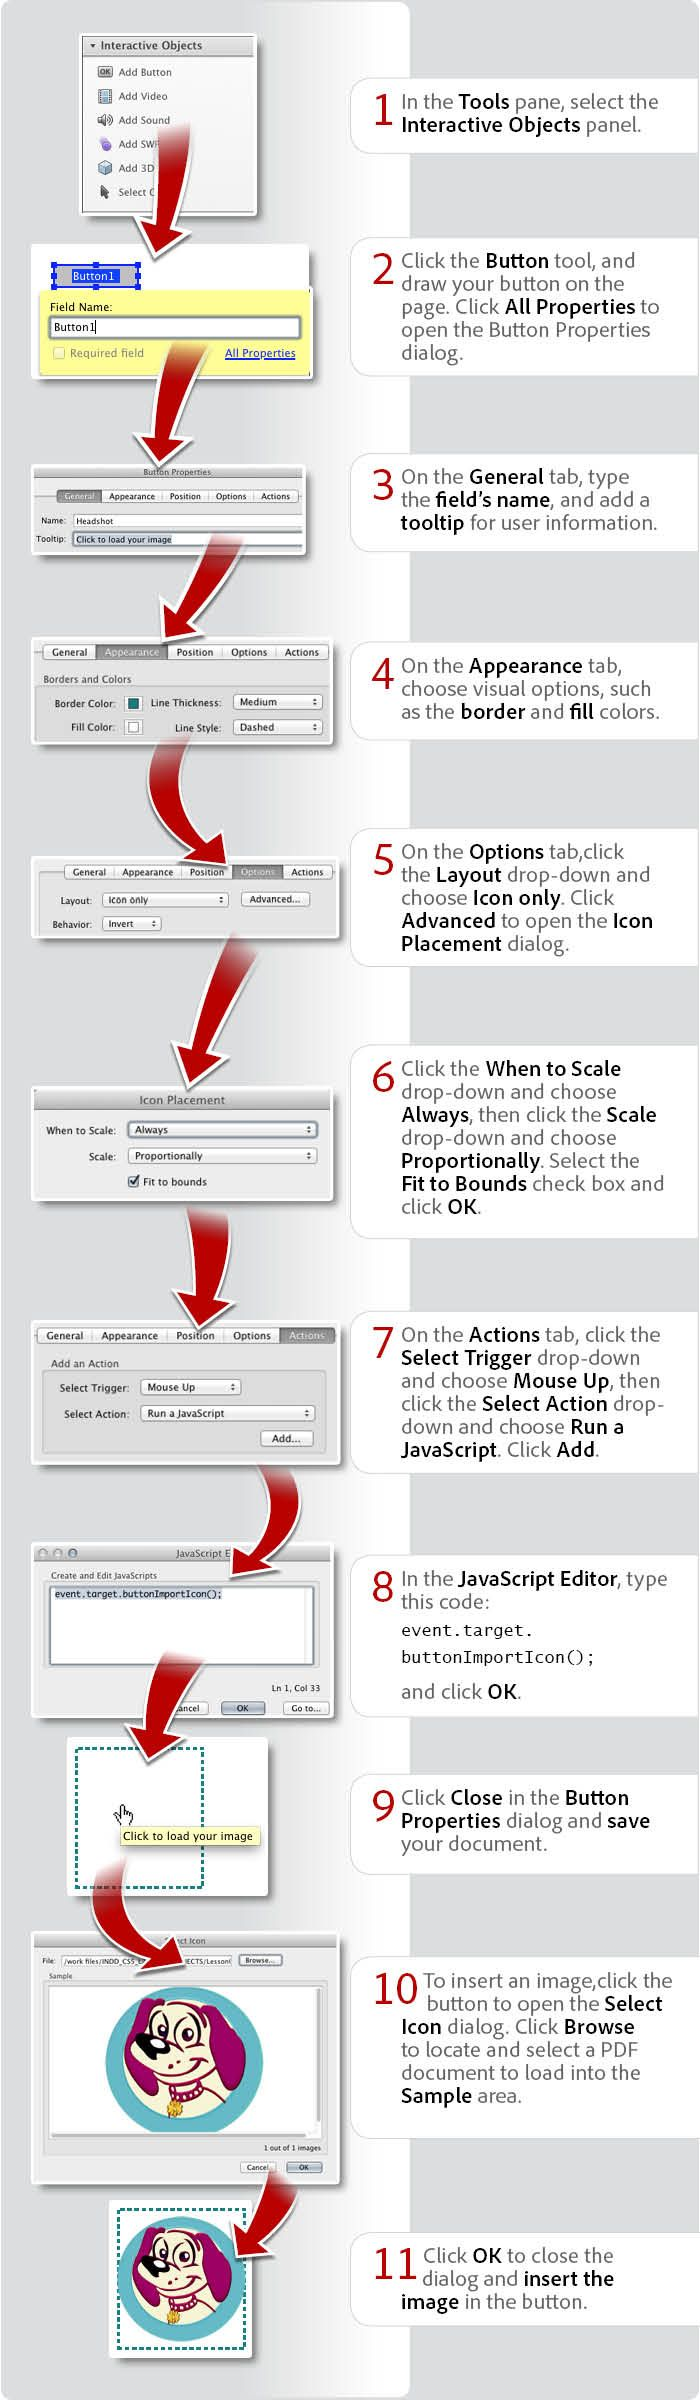 How To Create A Button Form Field To Insert A Pdf File: In This Graphic